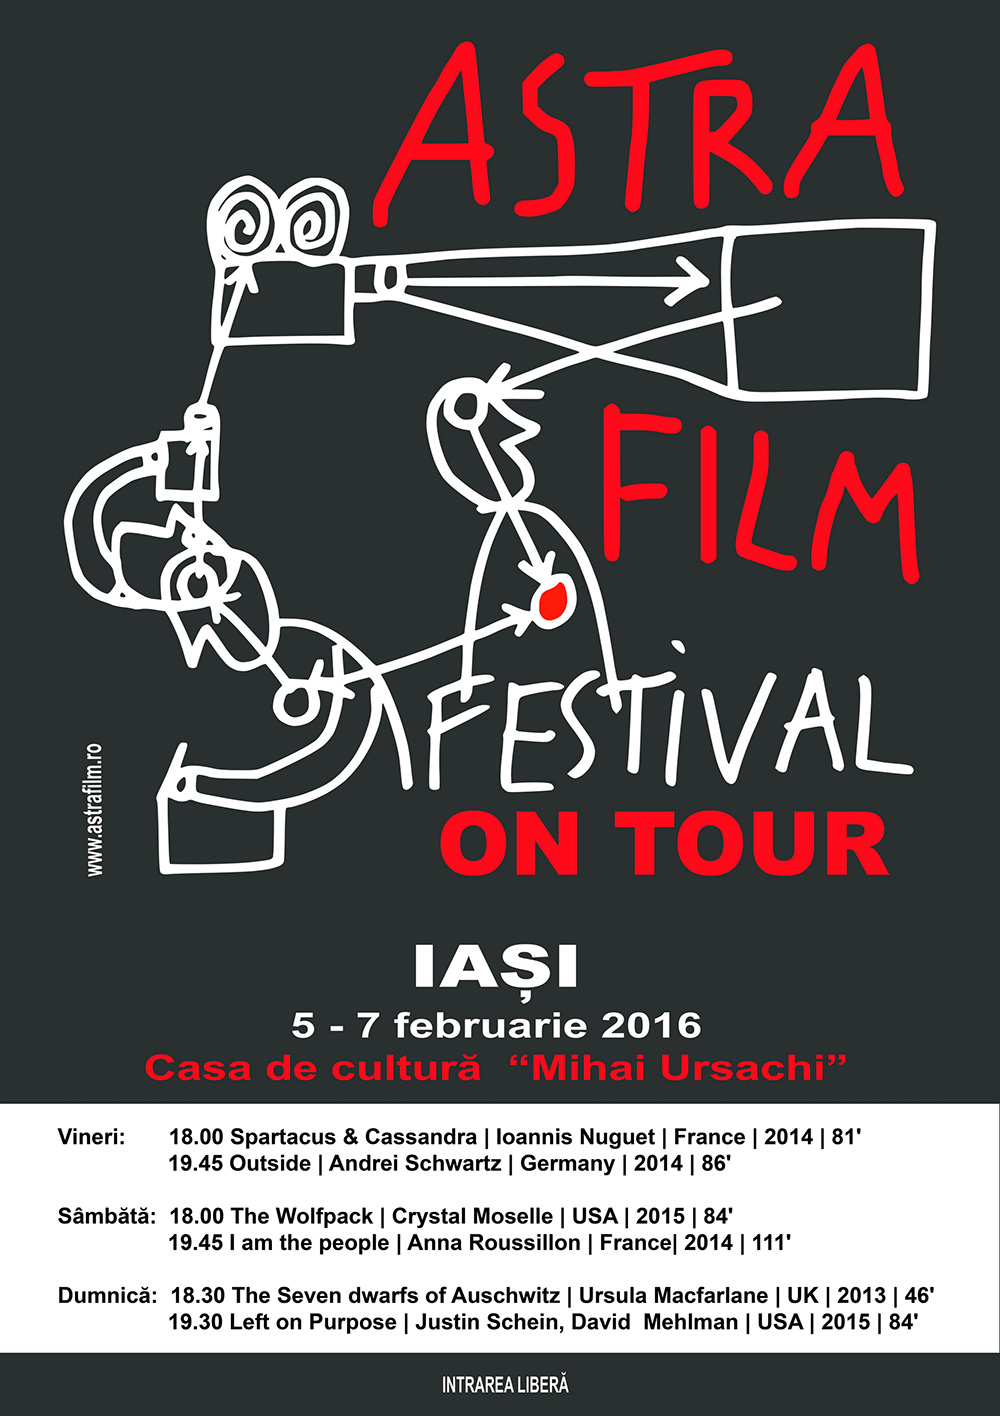 Un weekend de documentare marca Astra Film la Iași!